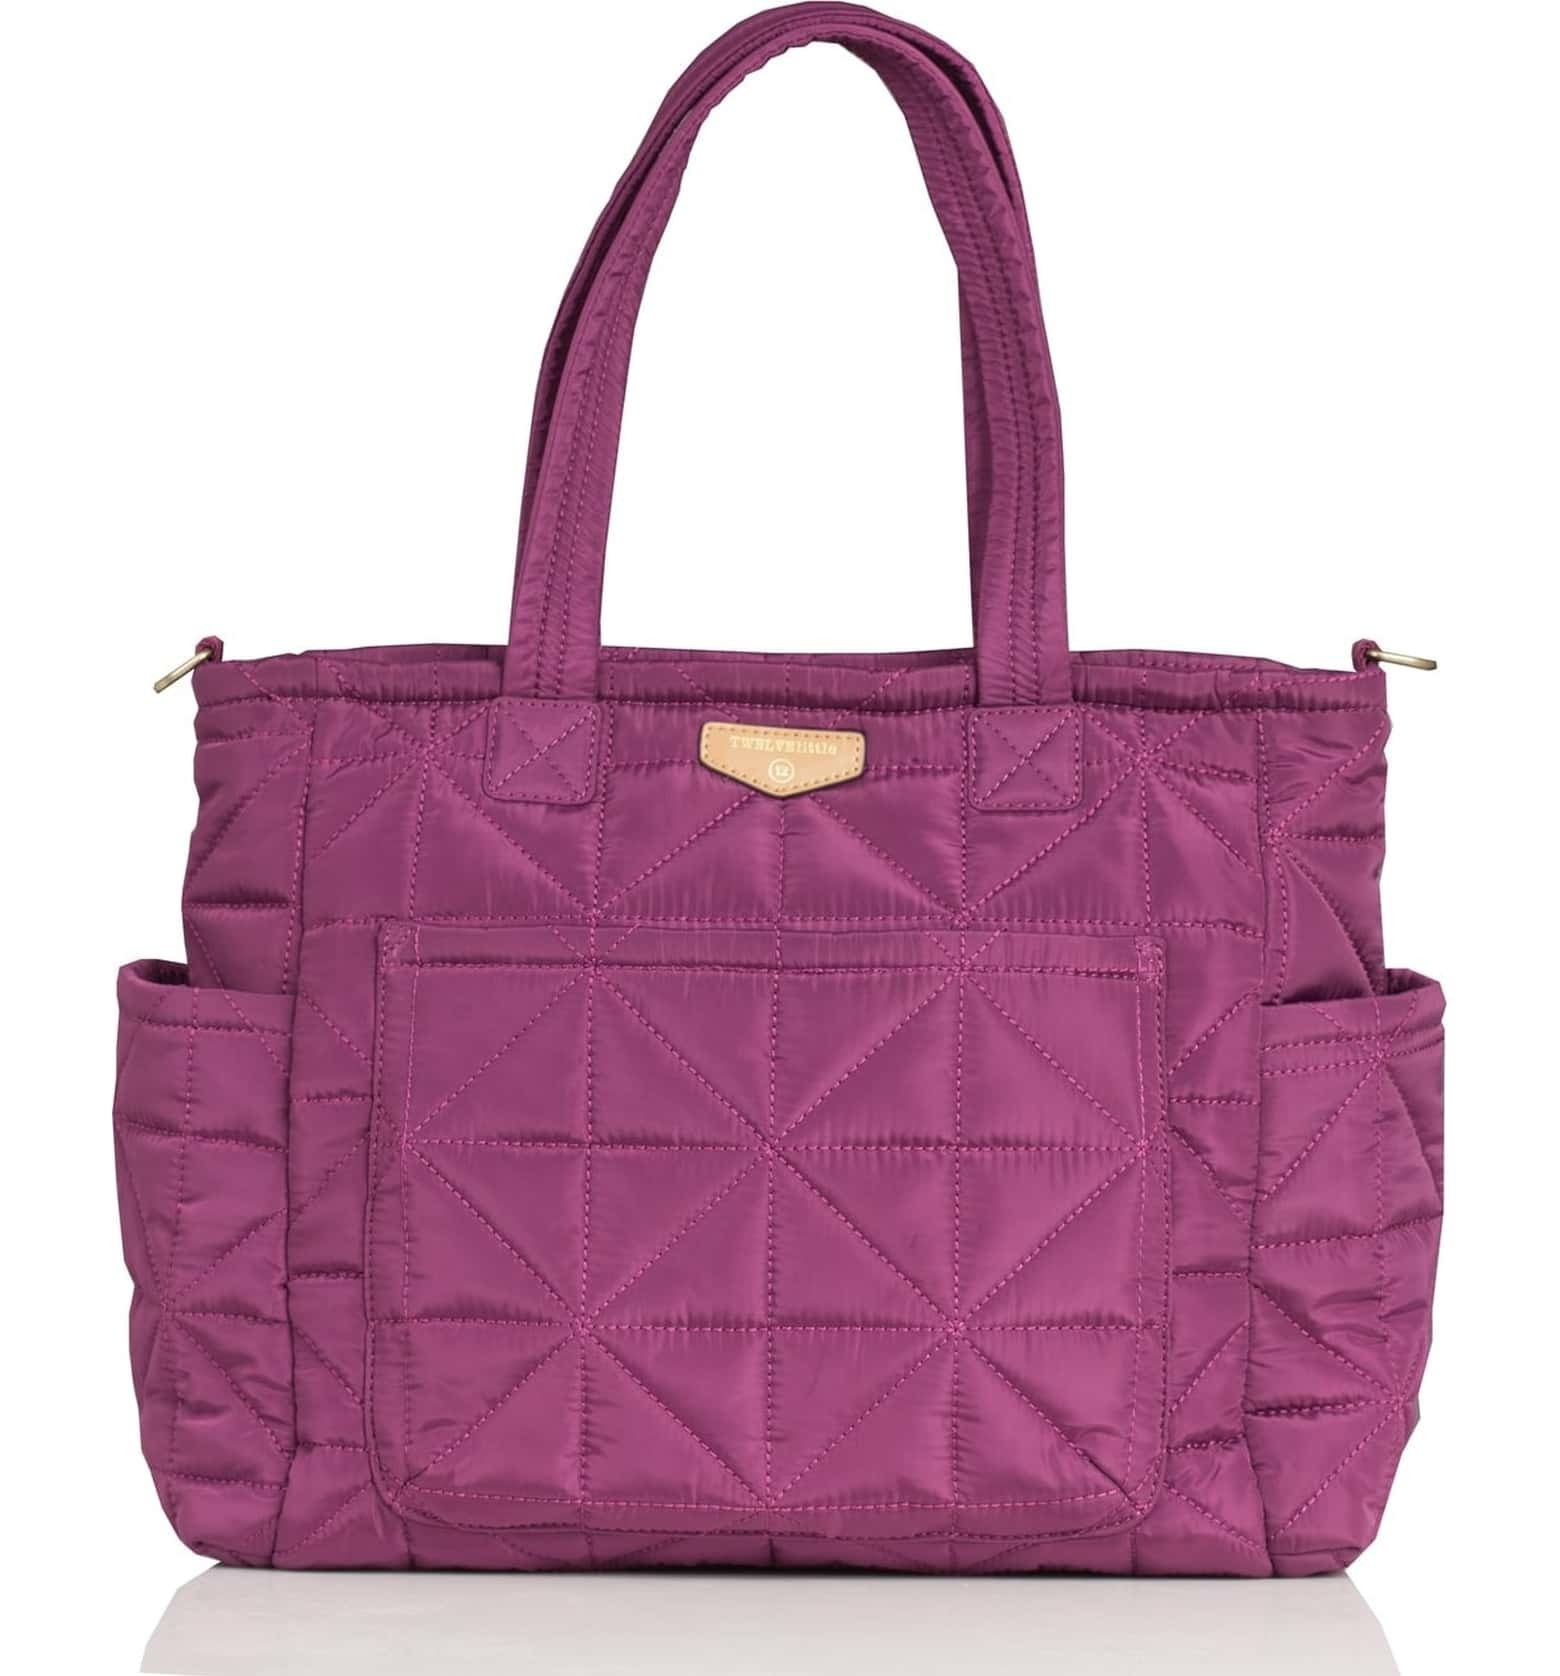 Stylish Diaper Bags For The Chic Parent